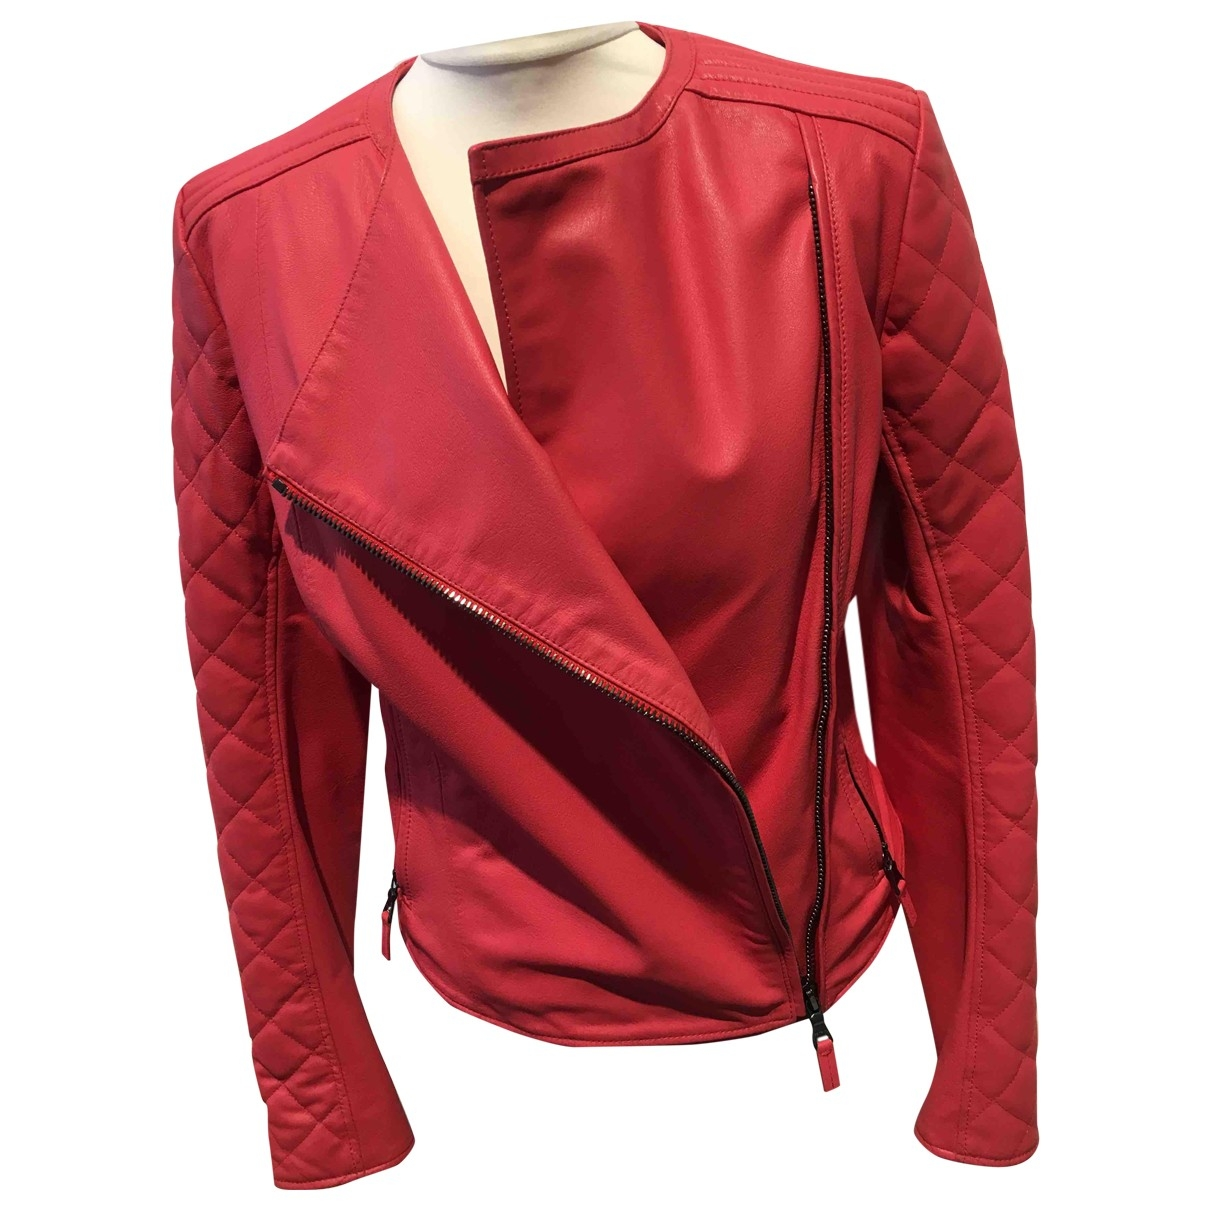 Etro \N Red Leather jacket for Women 42 IT